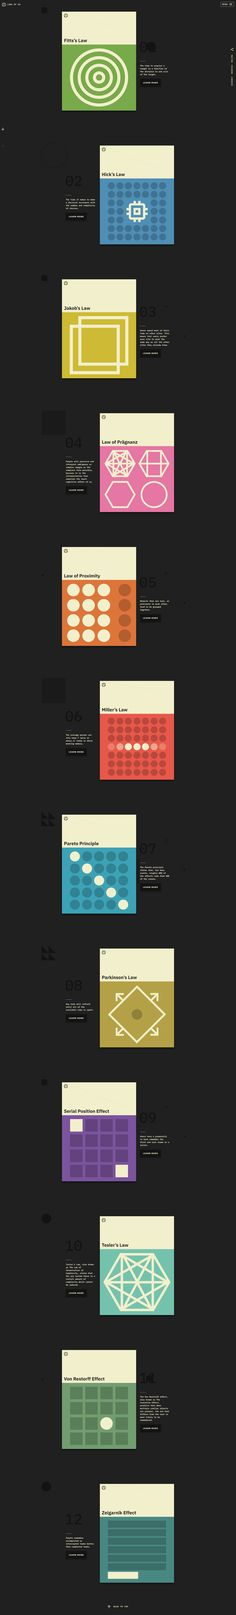 Laws of UX is a collection of the maxims and principles that designers can consider when building user interfaces. User Experience, User Interface, Bar Chart, Law, Graphics, Design, Graphic Design, Bar Graphs